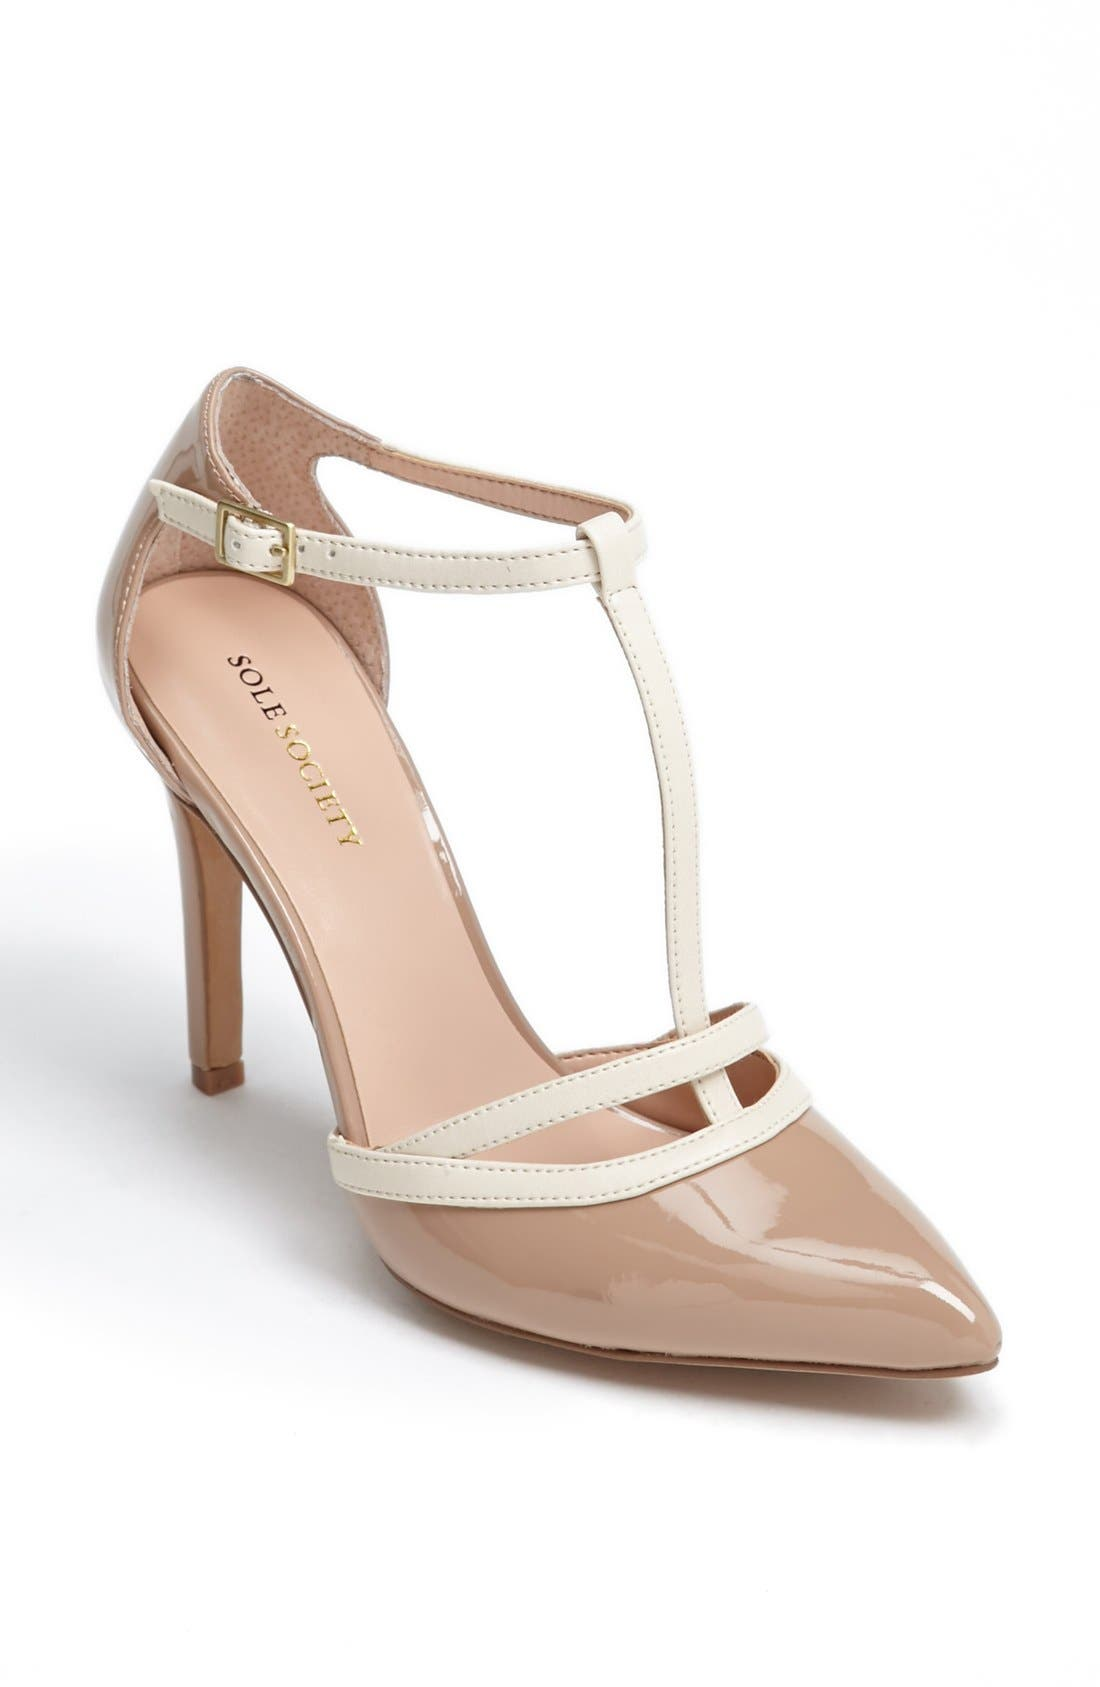 Alternate Image 1 Selected - Sole Society 'Nicola' T-Strap Pump